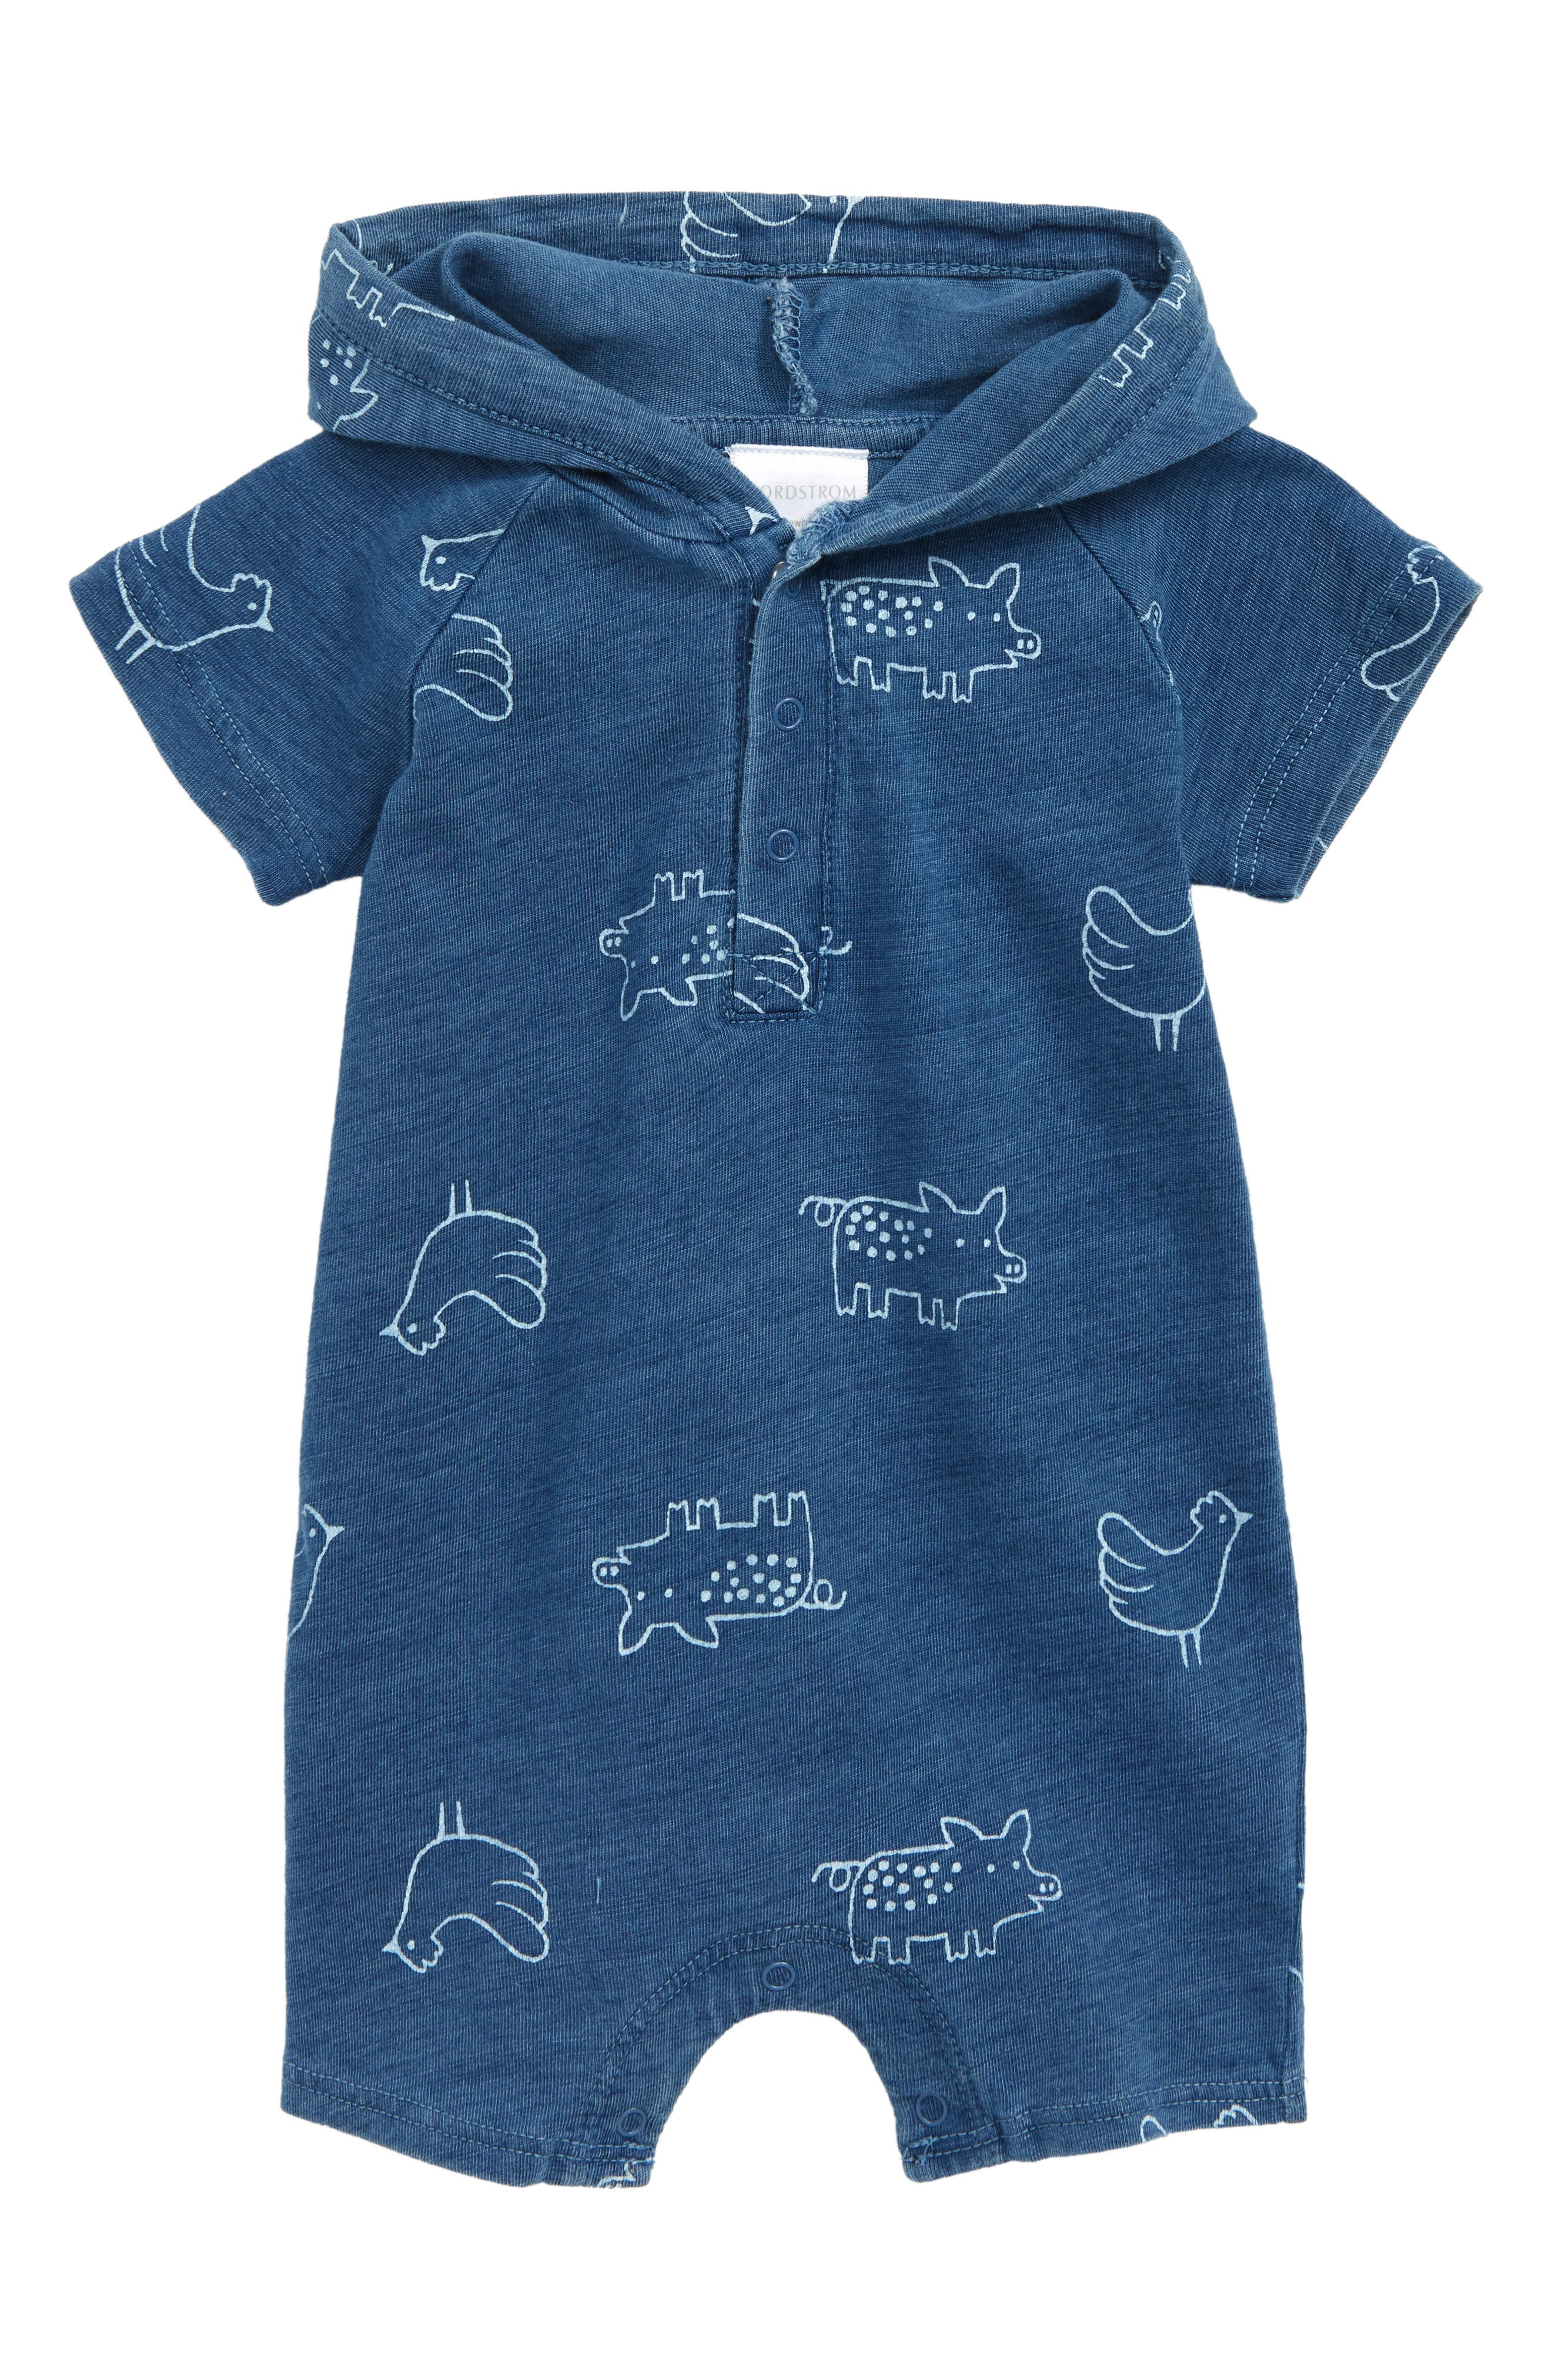 Style; Humor Toms Romper Shoes In Blue Infant Size 9 Fashionable In